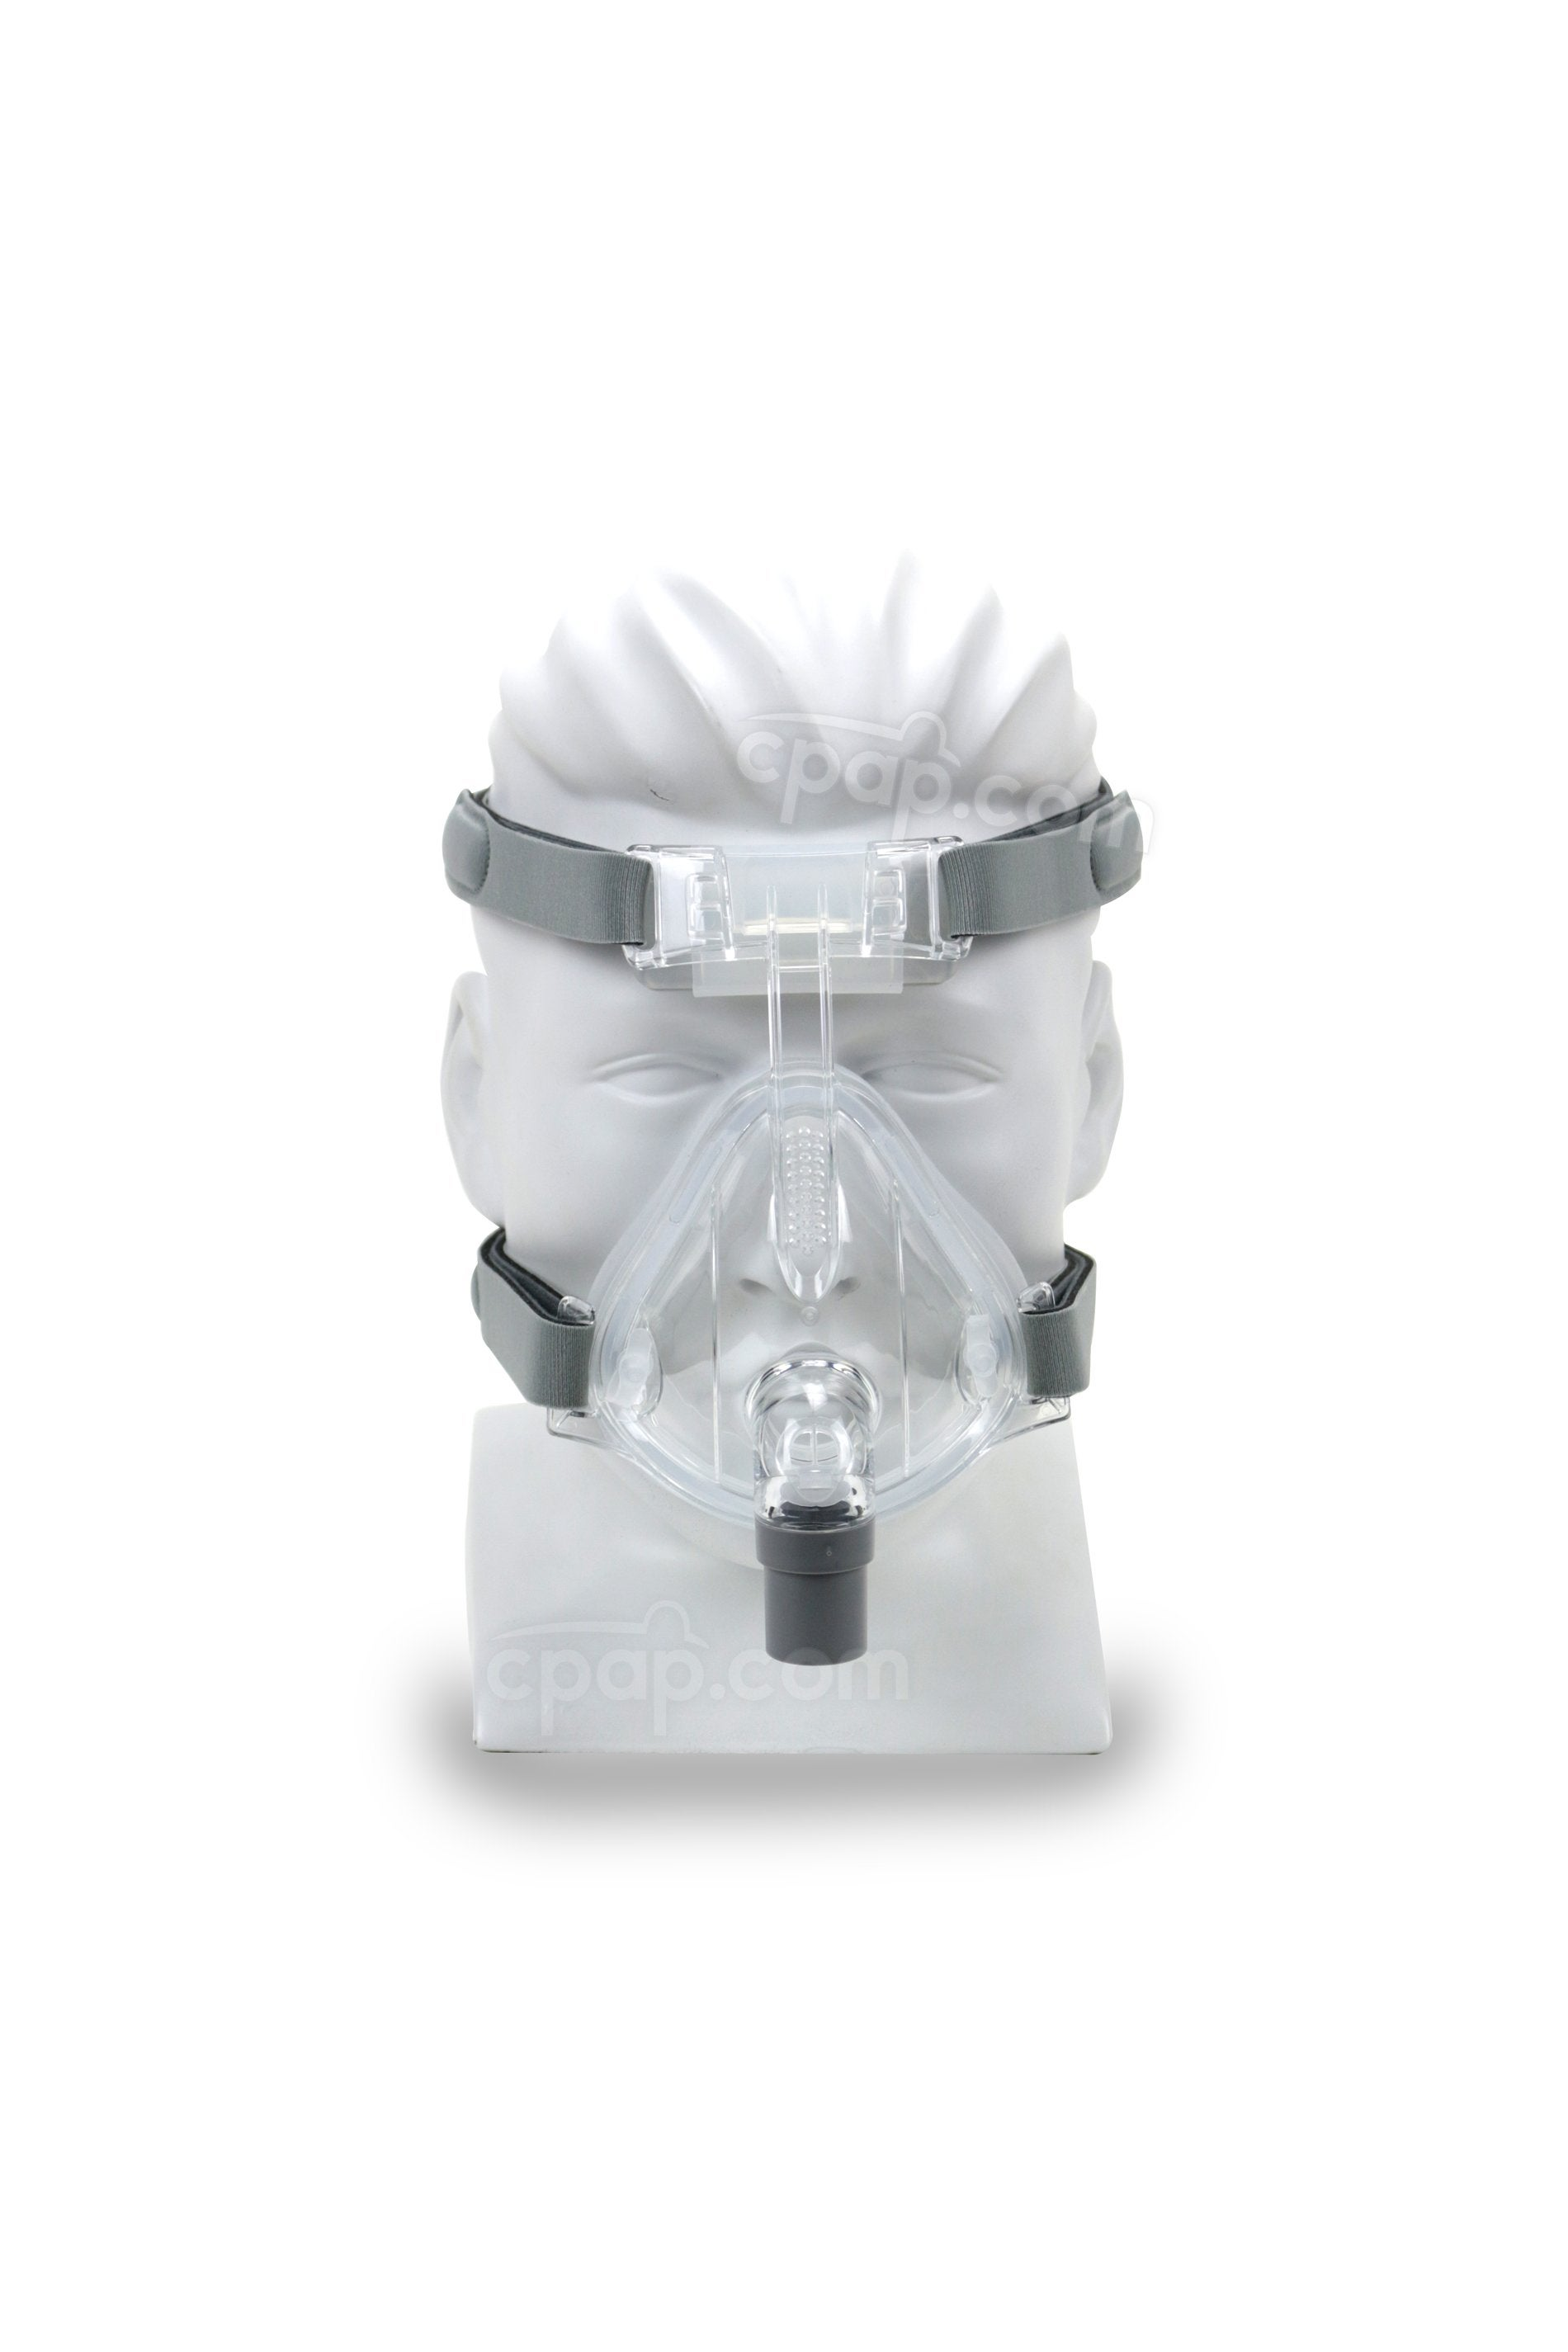 Numa Full Face CPAP Mask with Headgear - Front